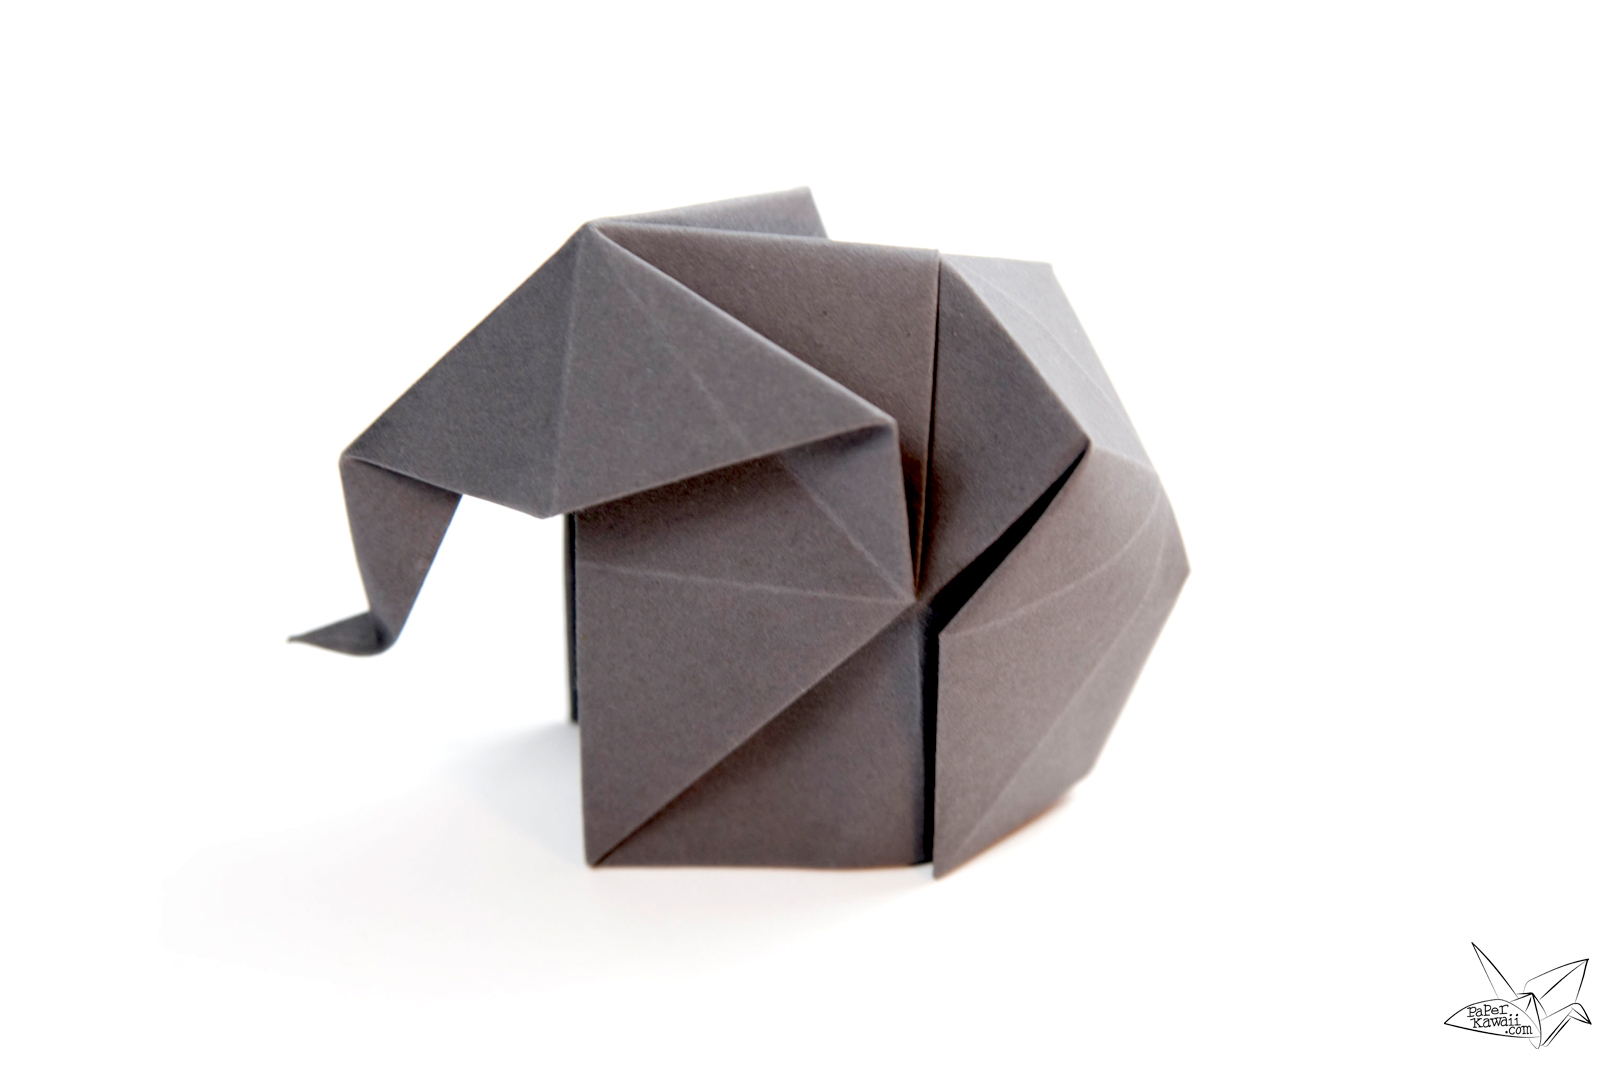 Origami elephant tutorial paper kawaii origami elephant tutorial check out my paper recommendations for more information on where i get my paper and also ideas and money saving tips jeuxipadfo Choice Image